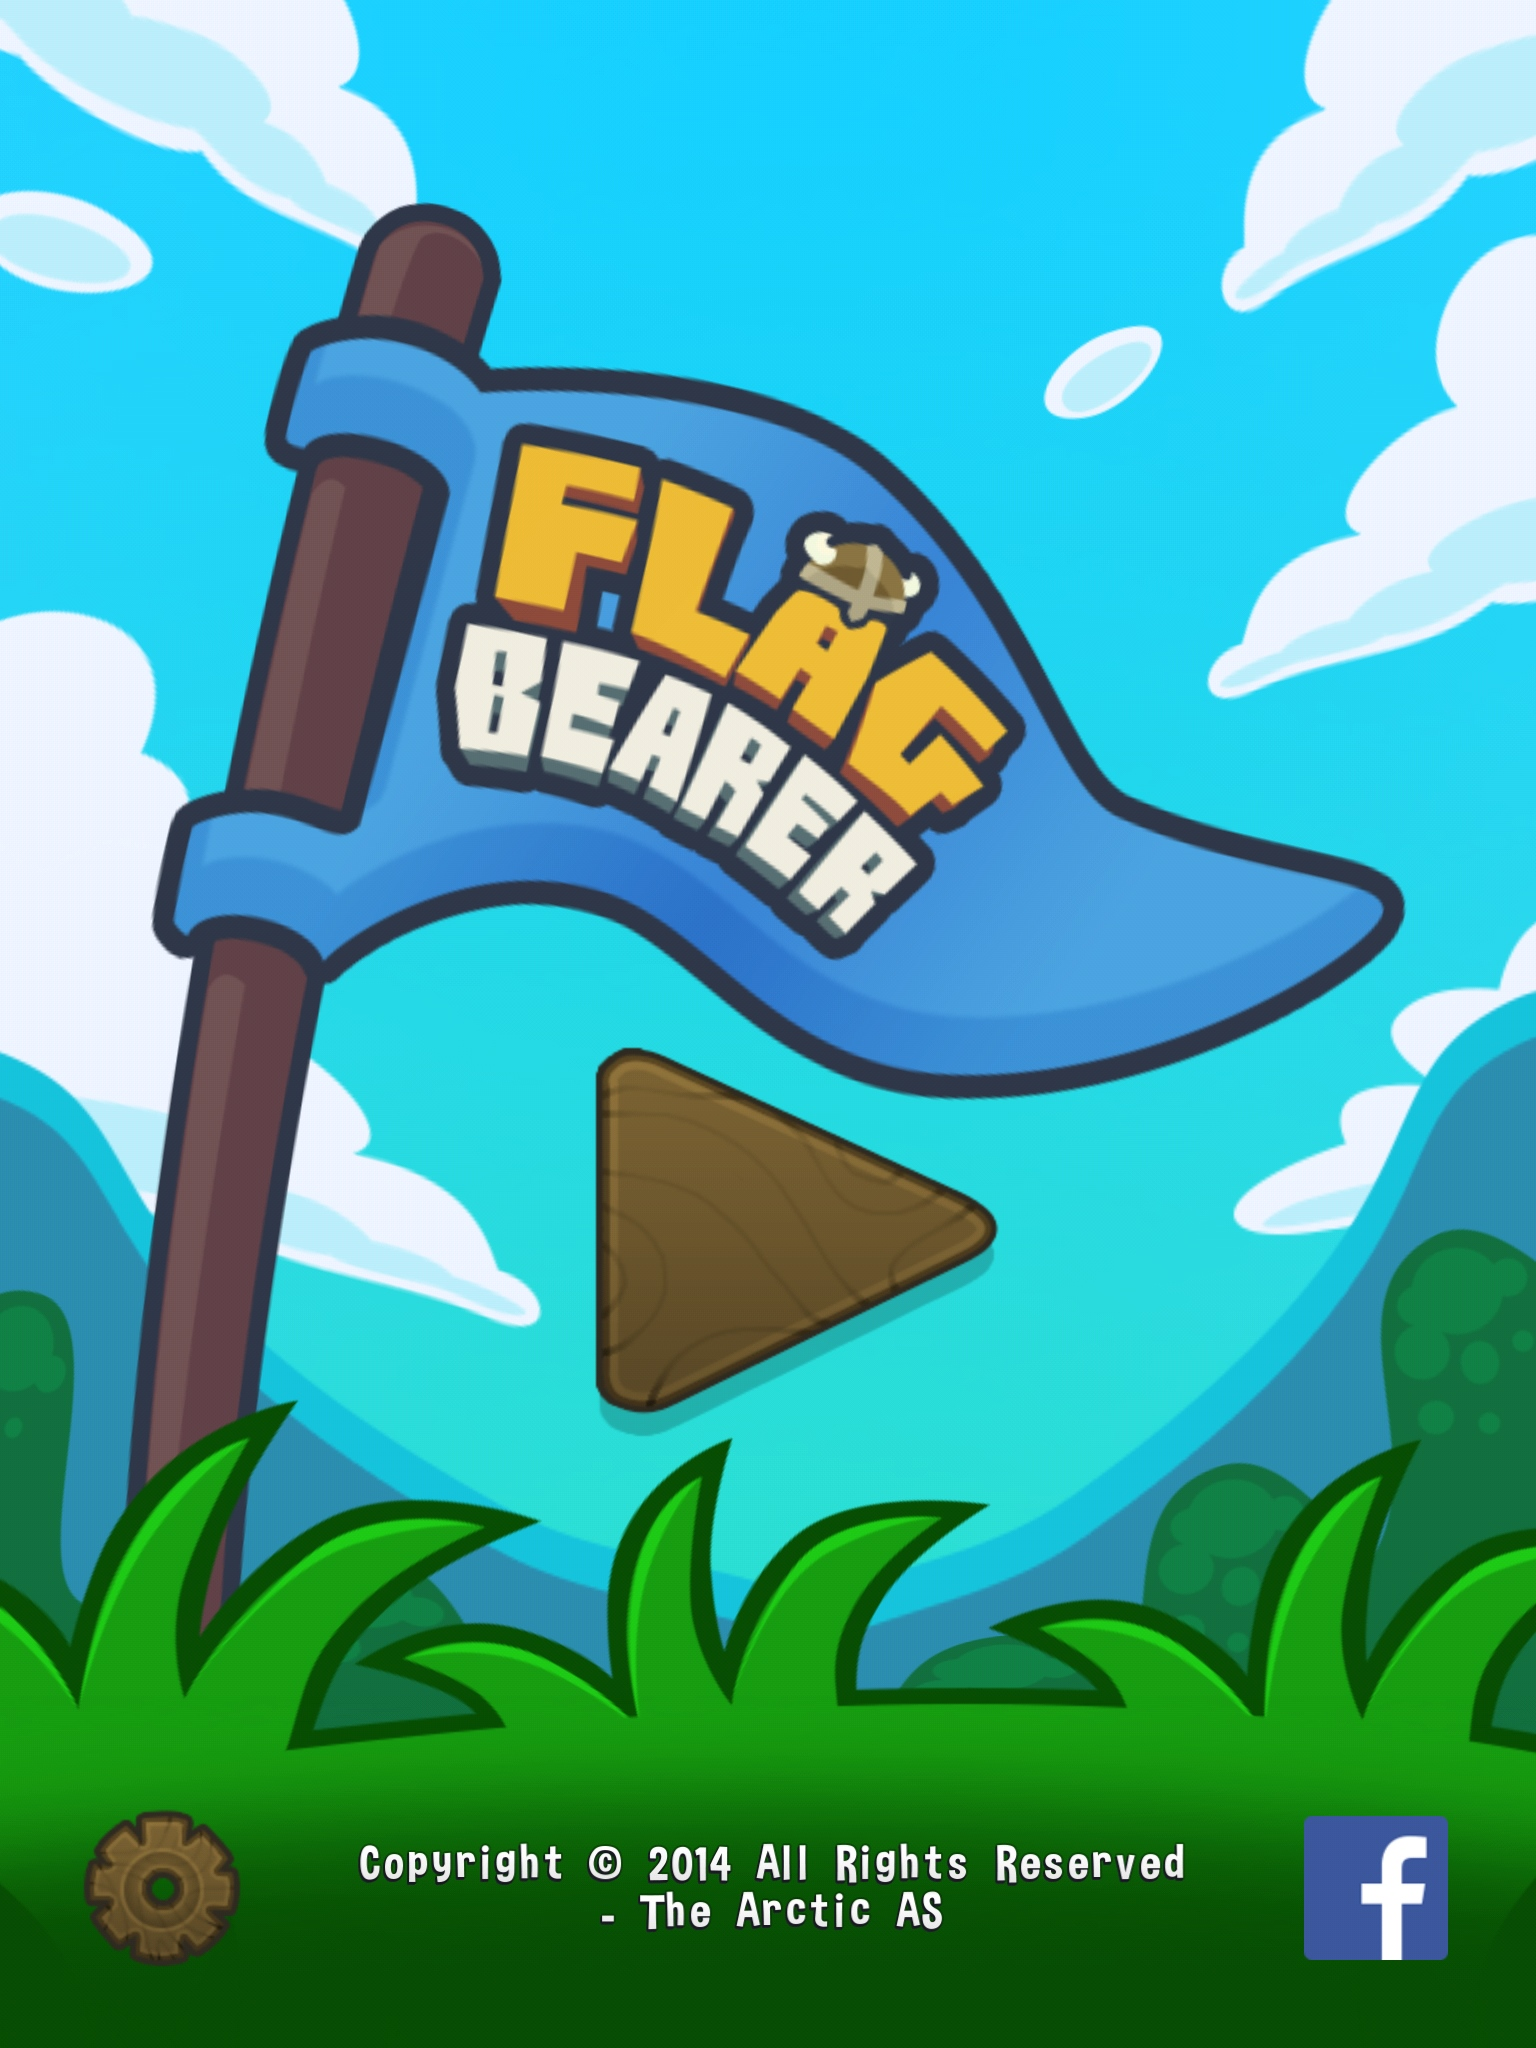 The Flag Bearer iOS Game Review